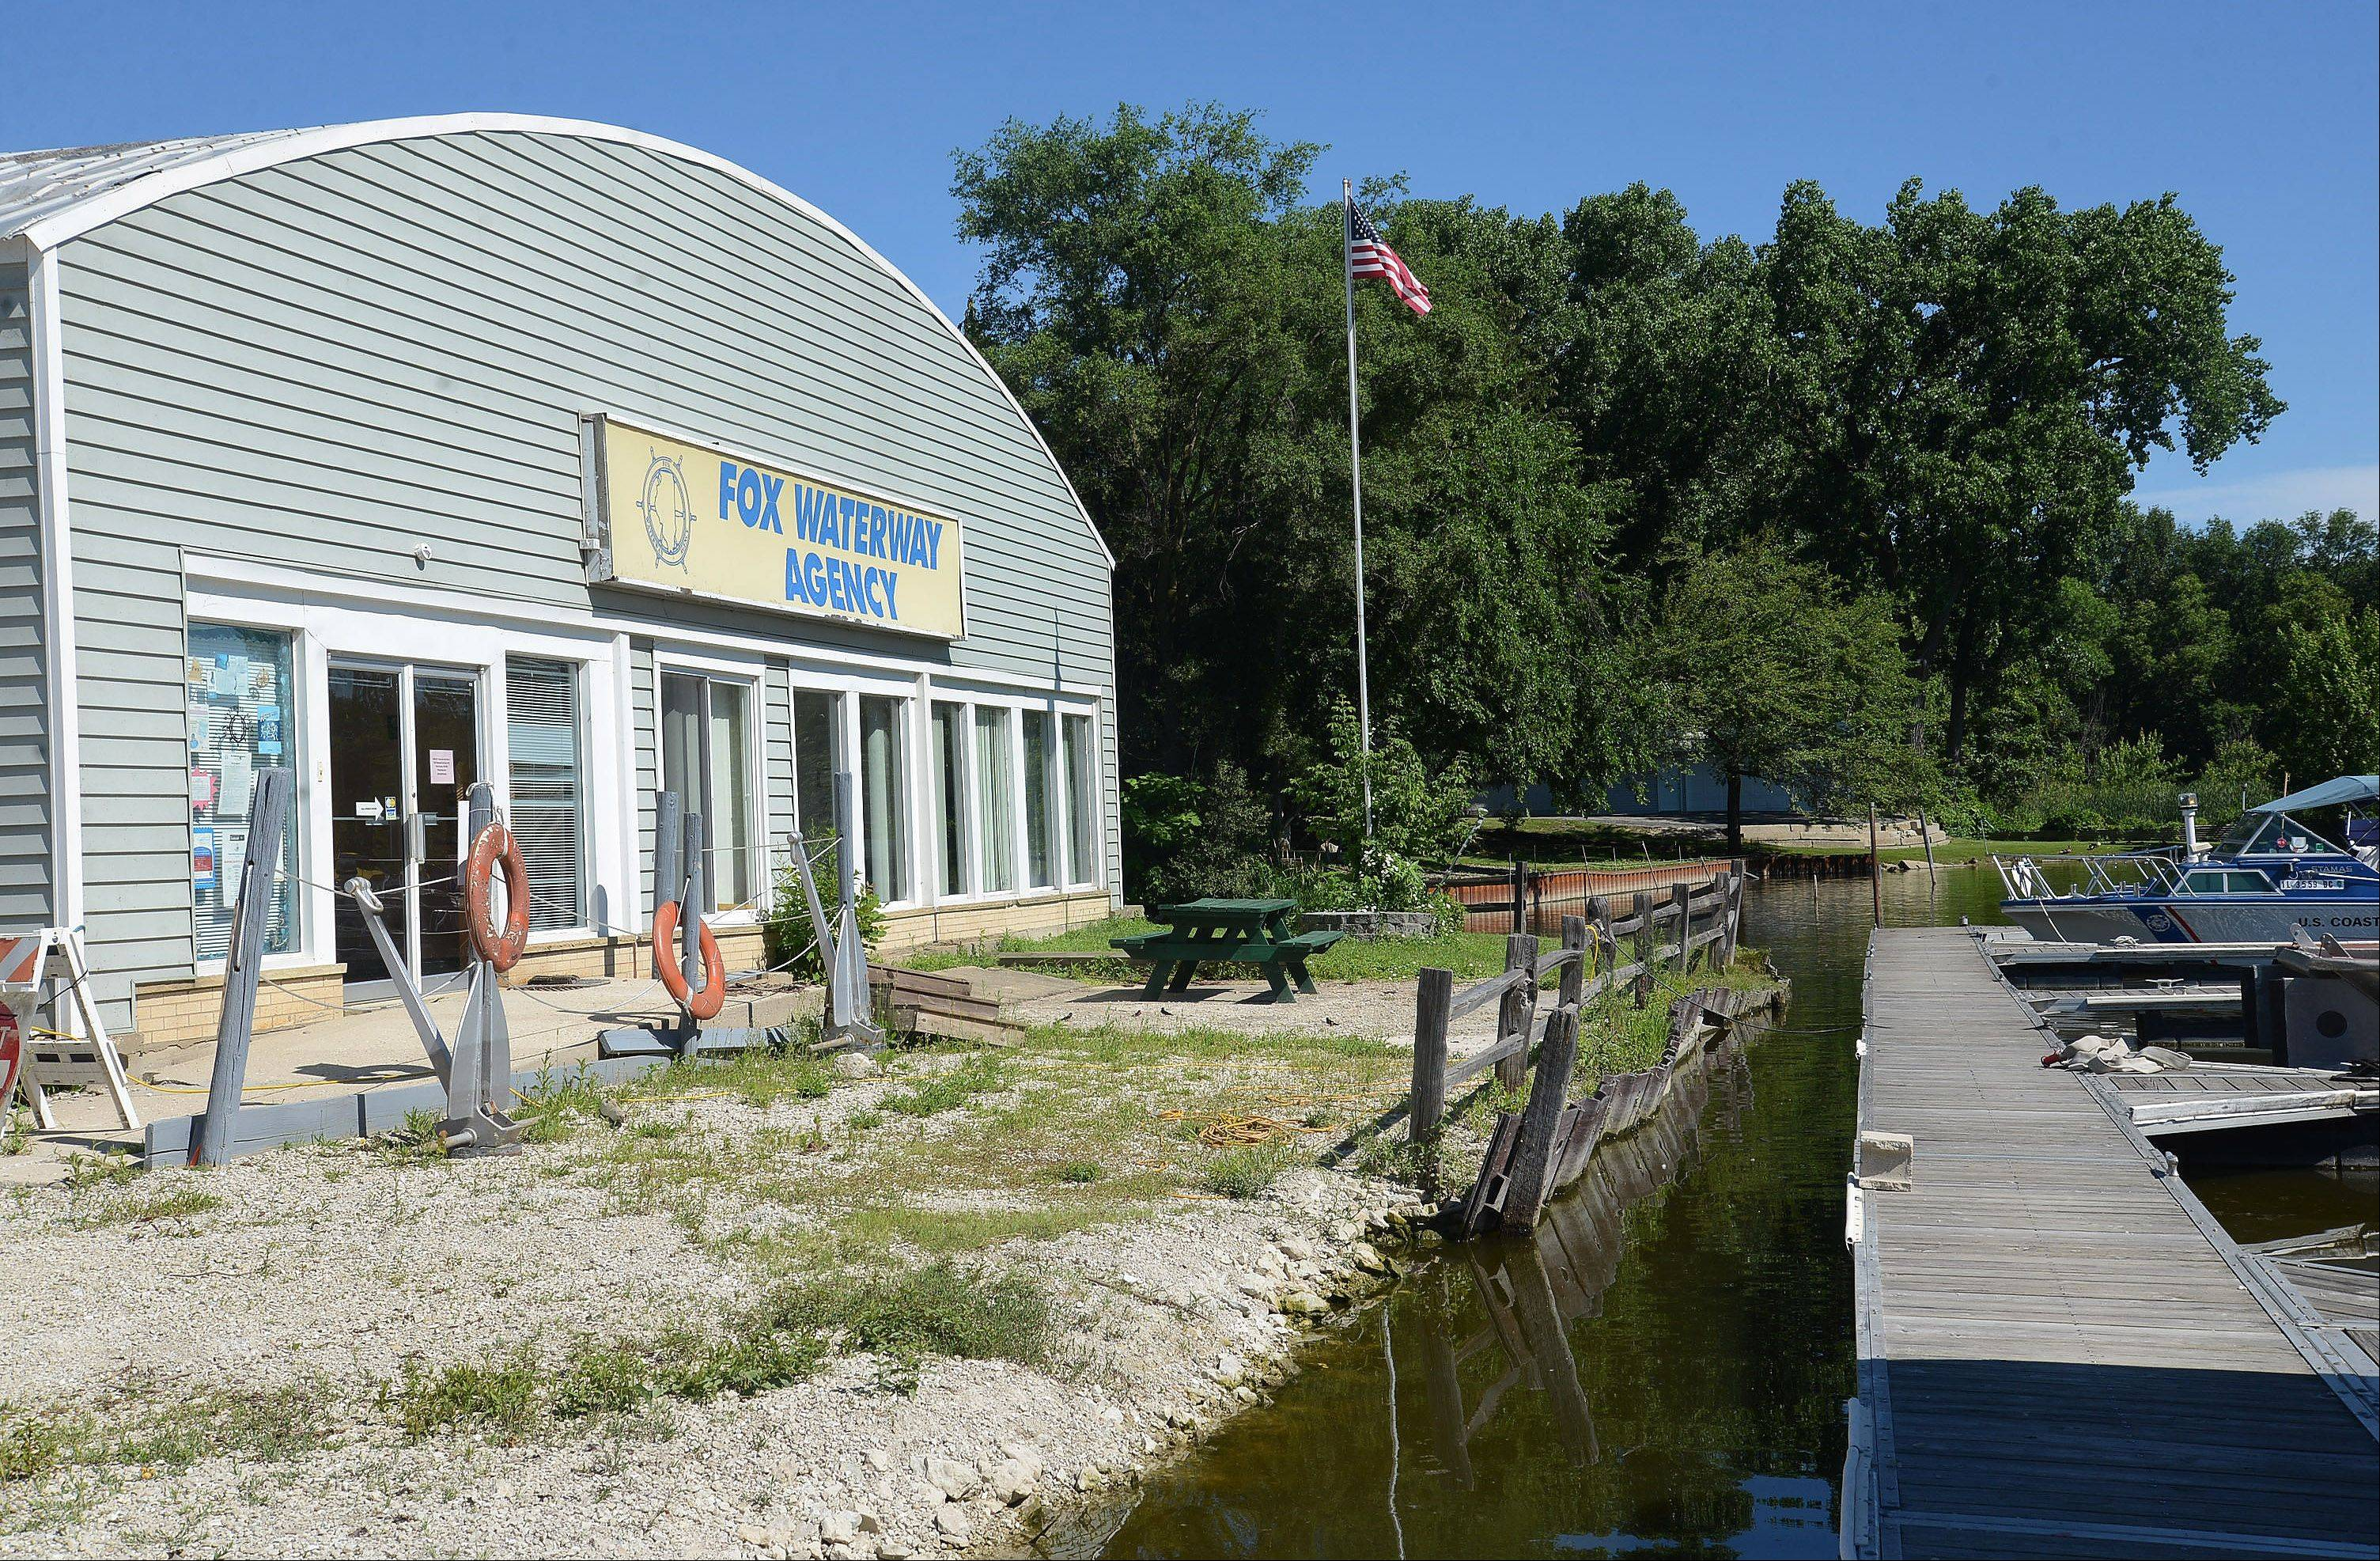 The Fox Waterway Agency building in Fox Lake was flooded in April.